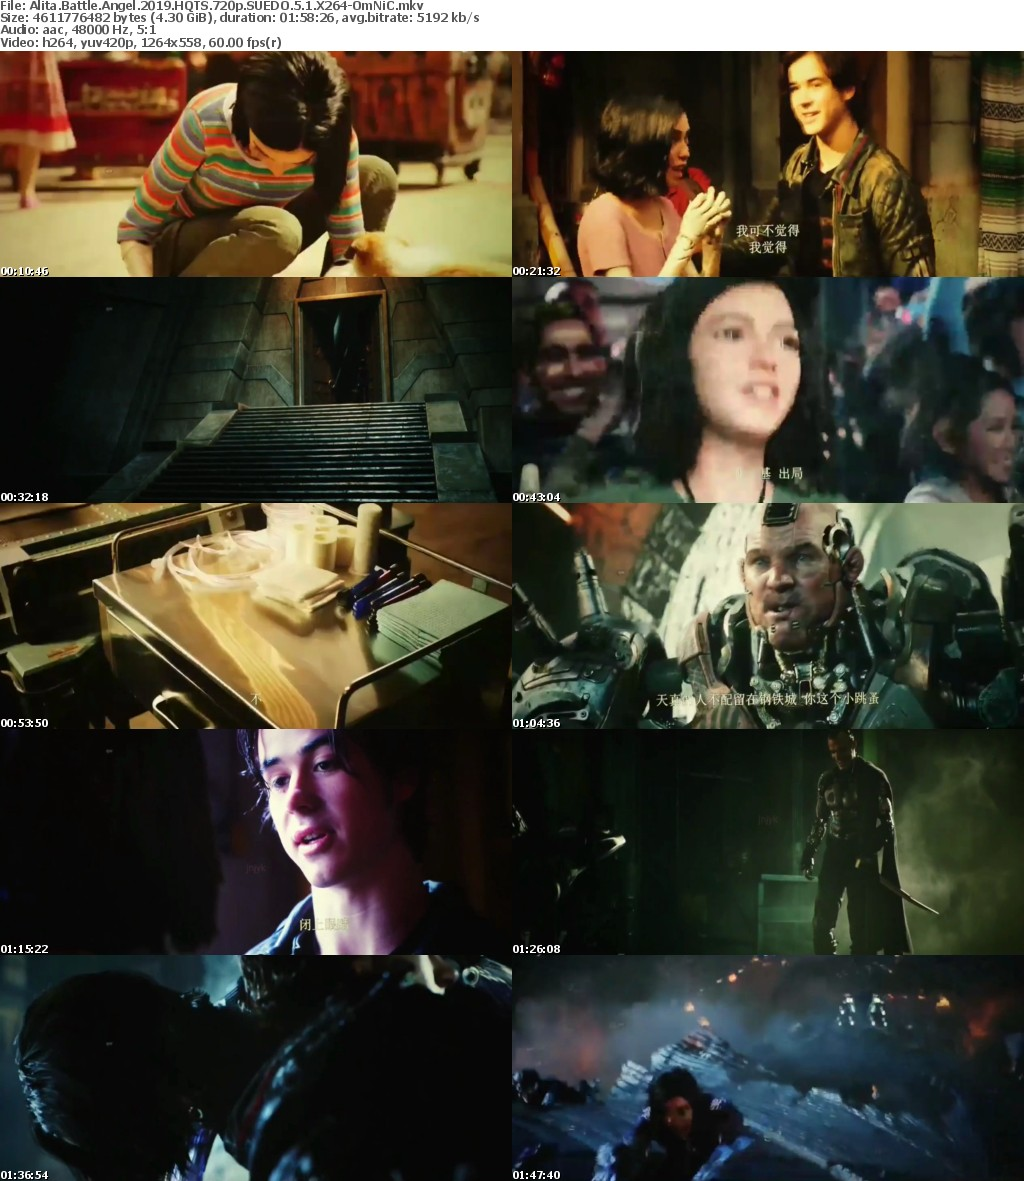 Alita Battle Angel (2019) HQTS 720p SUEDO 5.1 X264-OmNiC